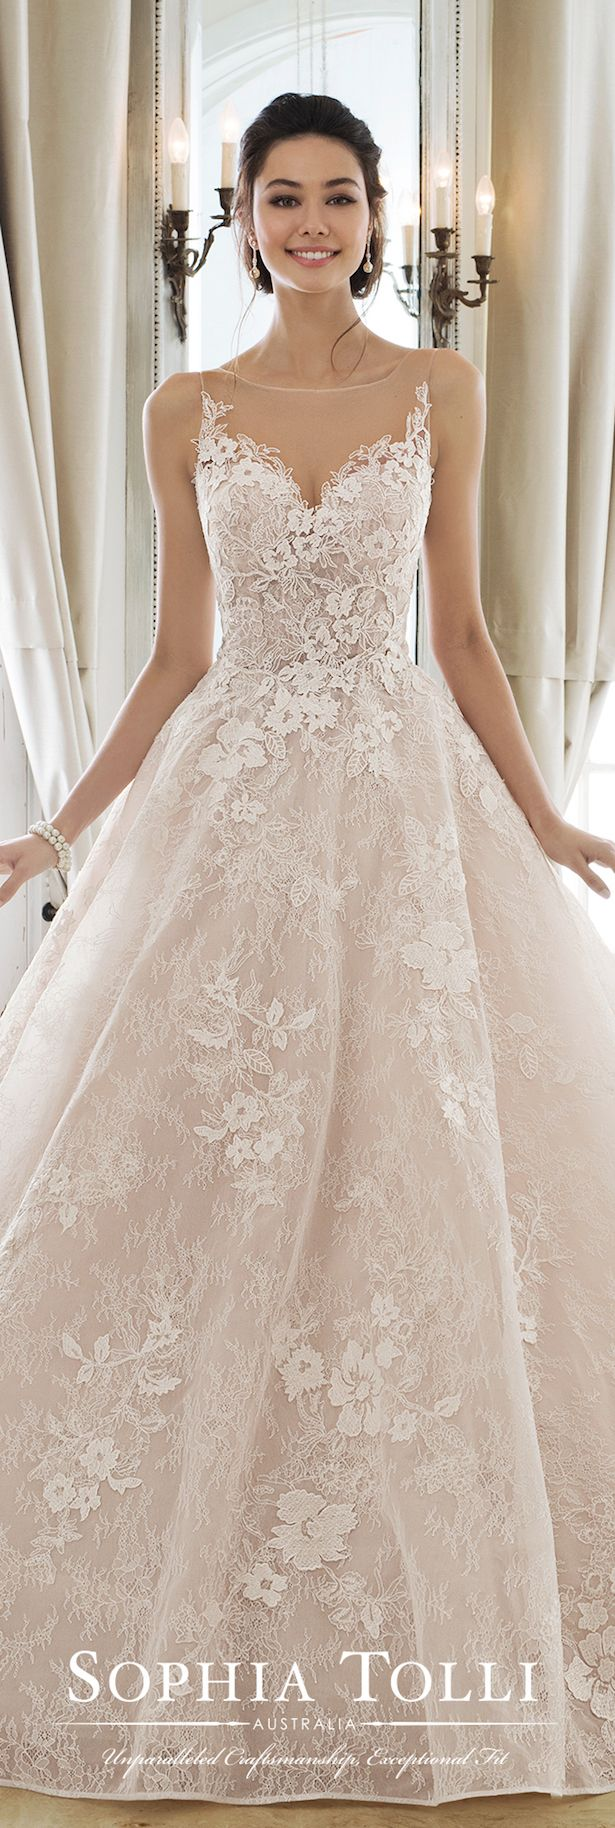 Sophia tolli wedding dress collection spring dress collection